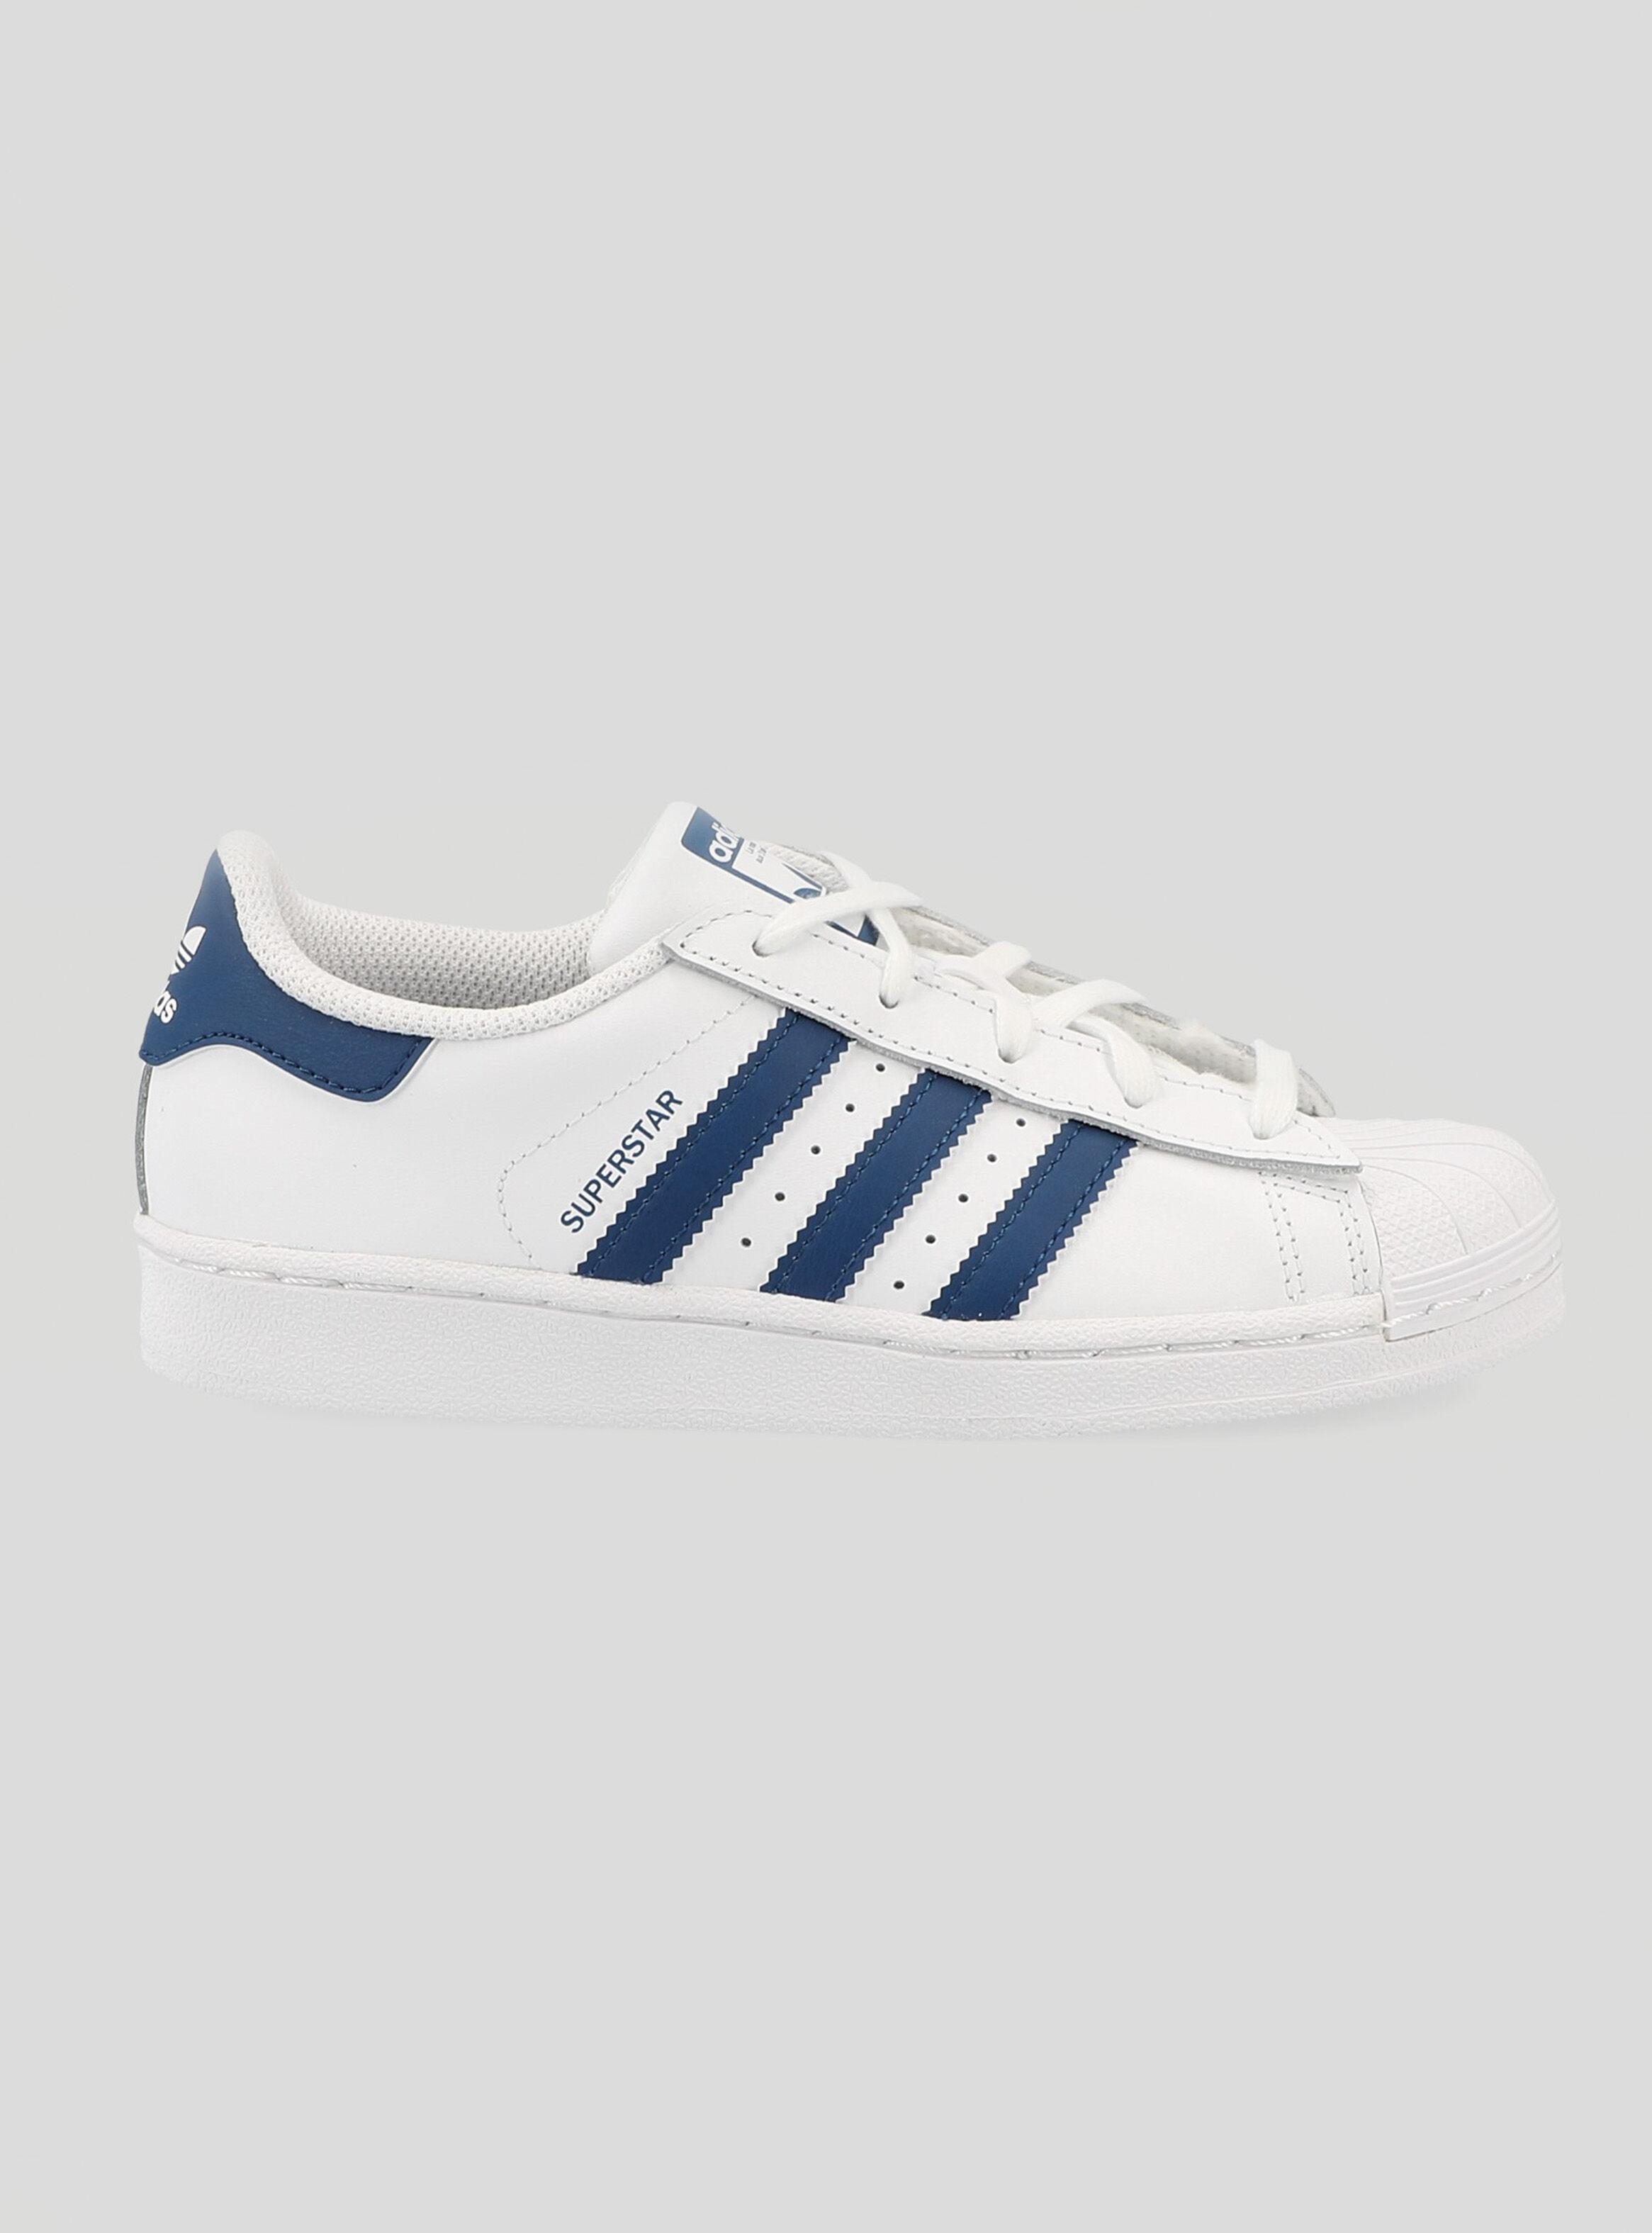 new arrivals adidas superstar zapatos hombres king 050fe 535f0